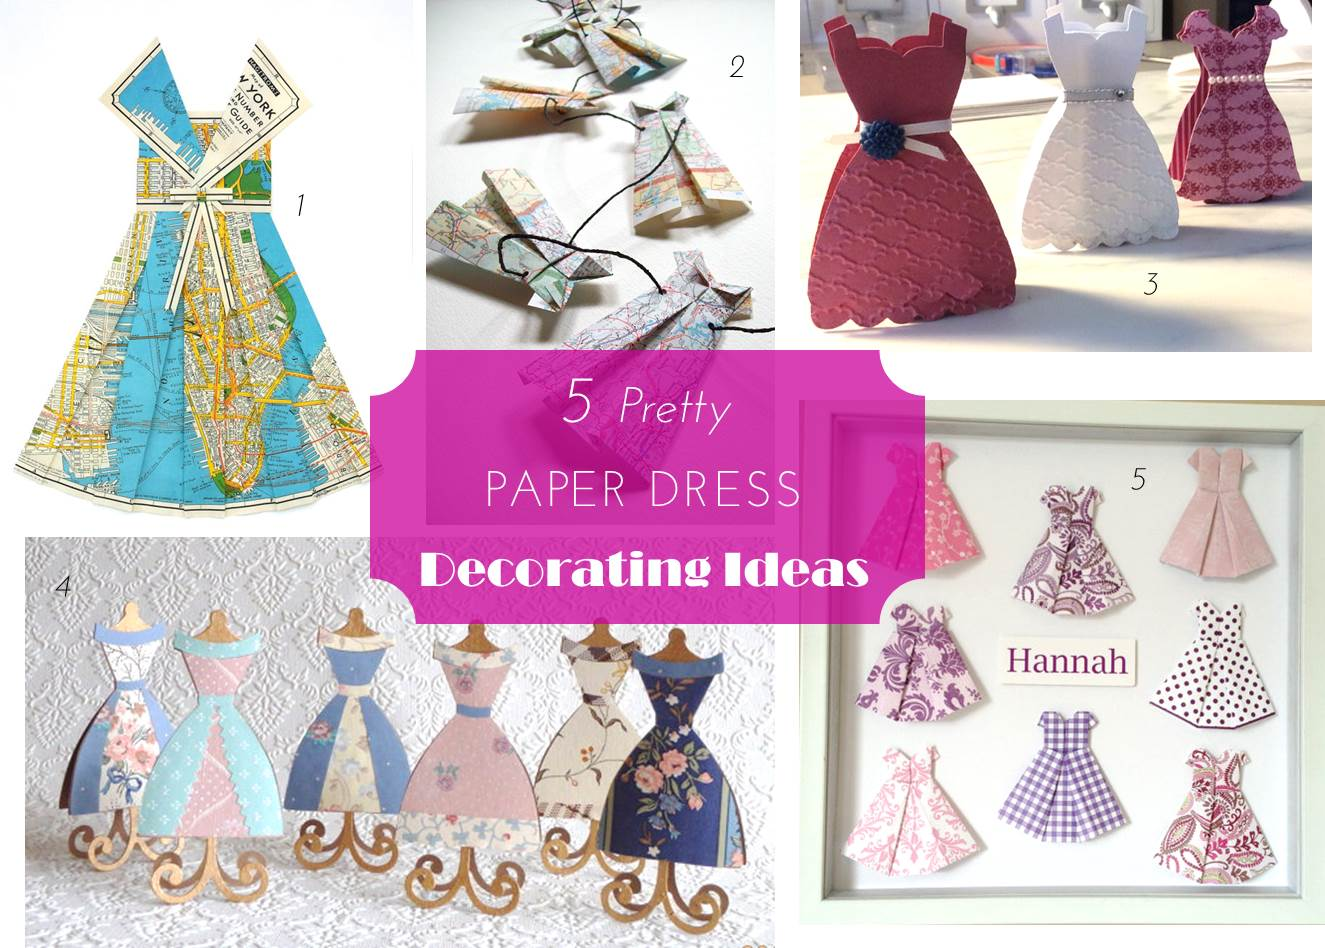 Midtown Girl By Amy Chandra Paper Dress Decor Ideas